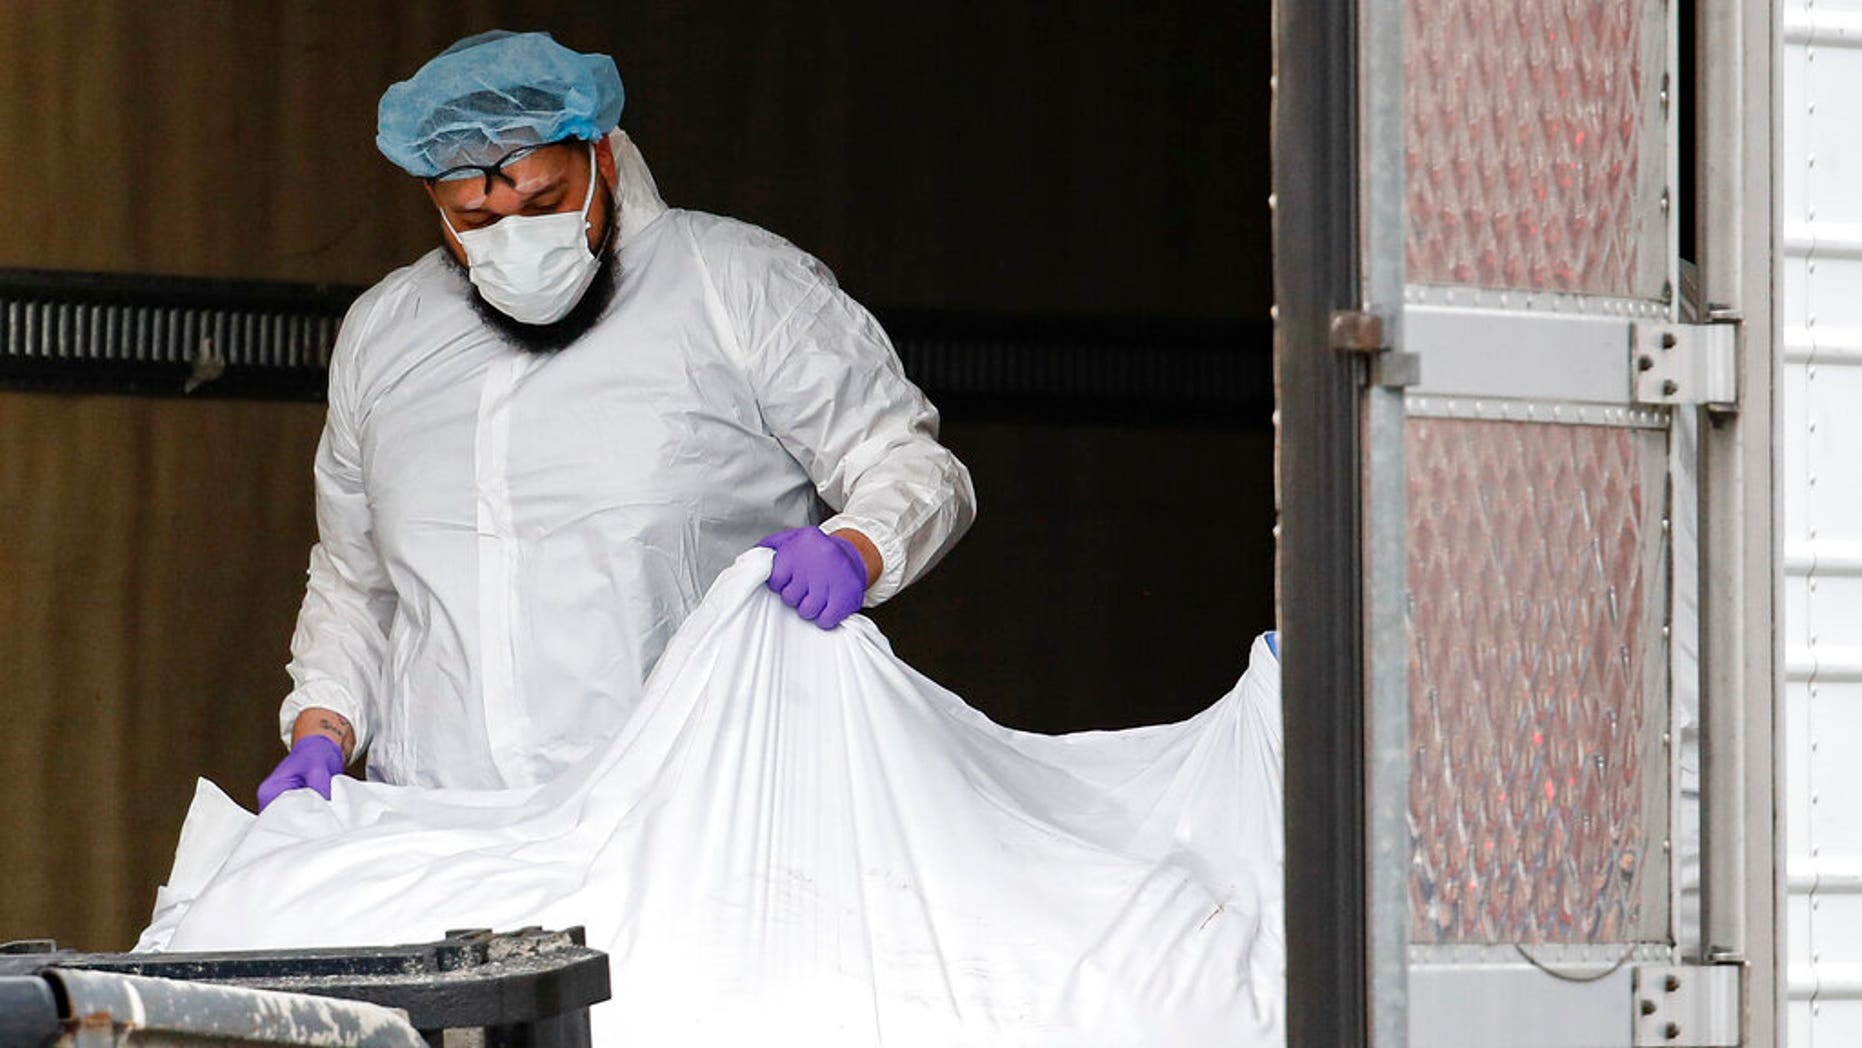 A body wrapped in plastic is loaded onto a refrigerated container truck used as a temporary morgue by medical workers wearing personal protective equipment due to COVID-19 concerns. (AP Photo/John Minchillo)